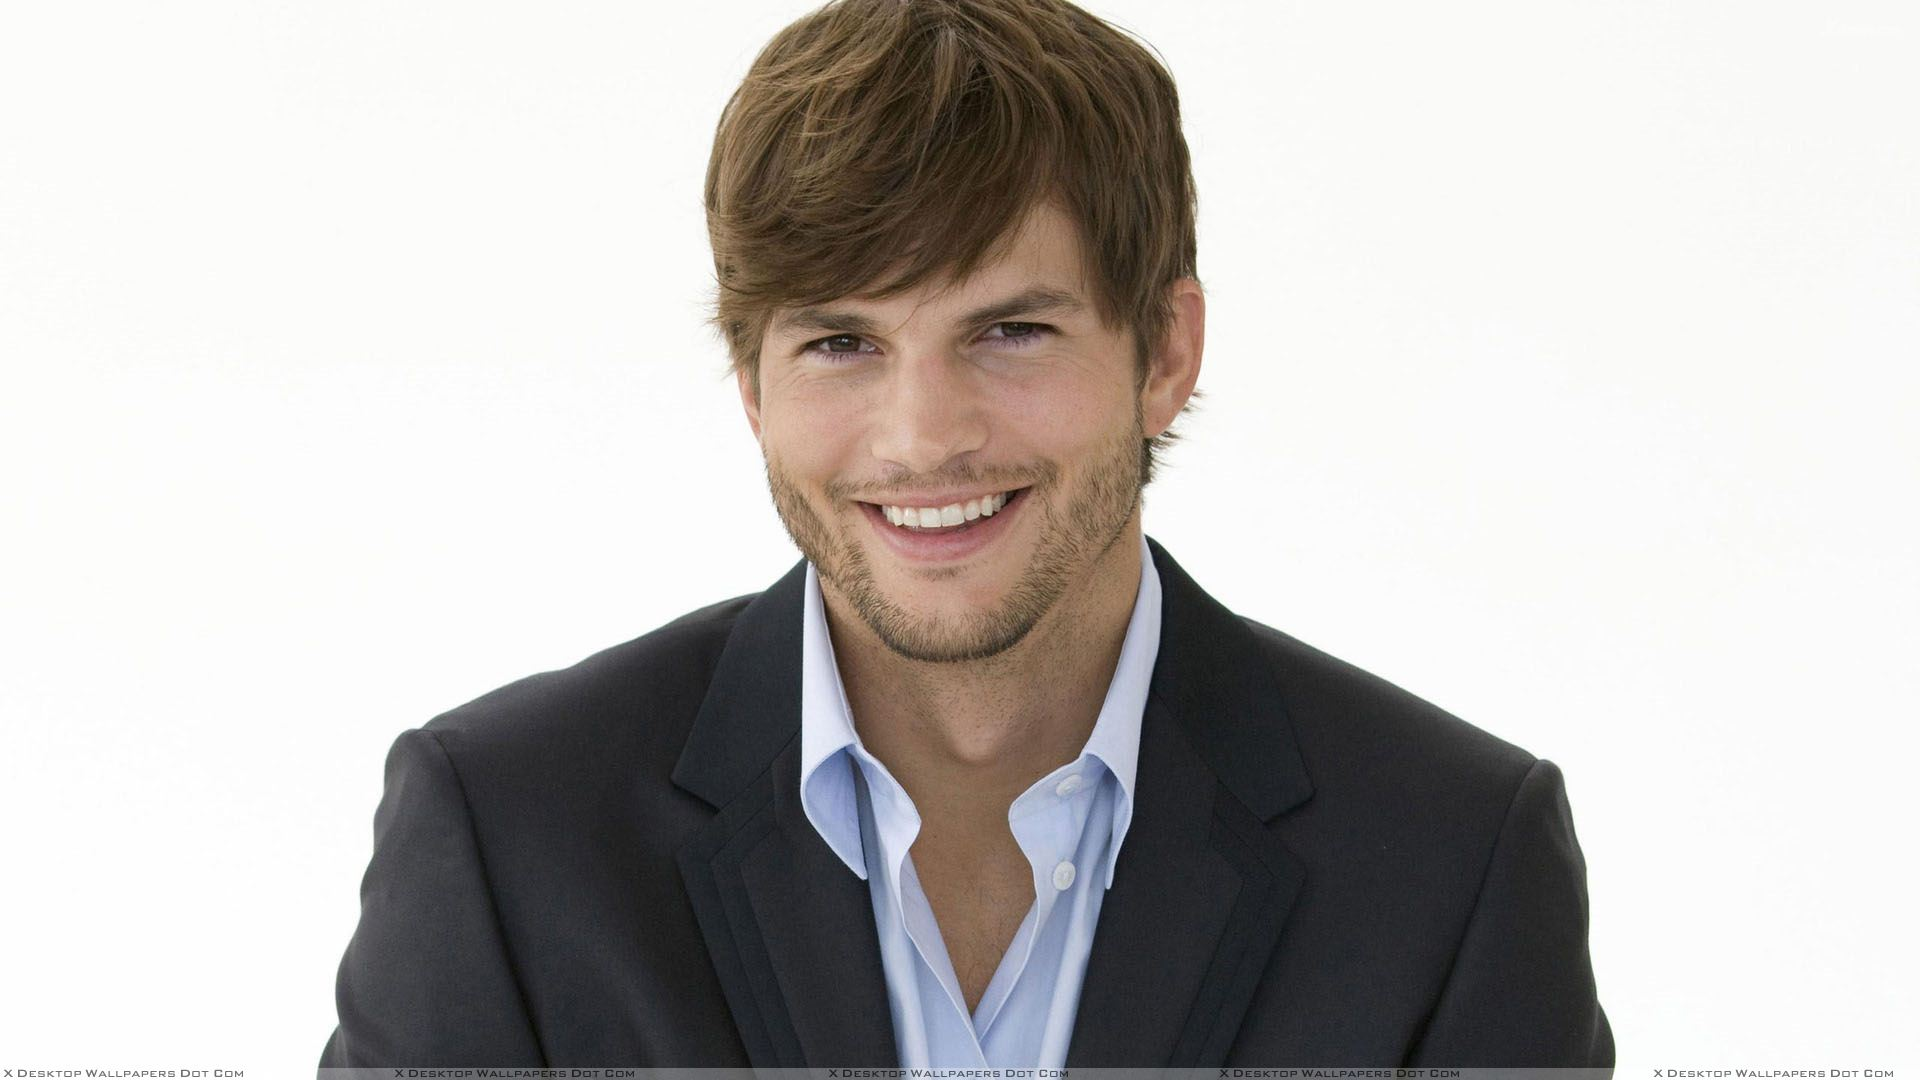 ashton kutcher wallpapers photos amp images in hd